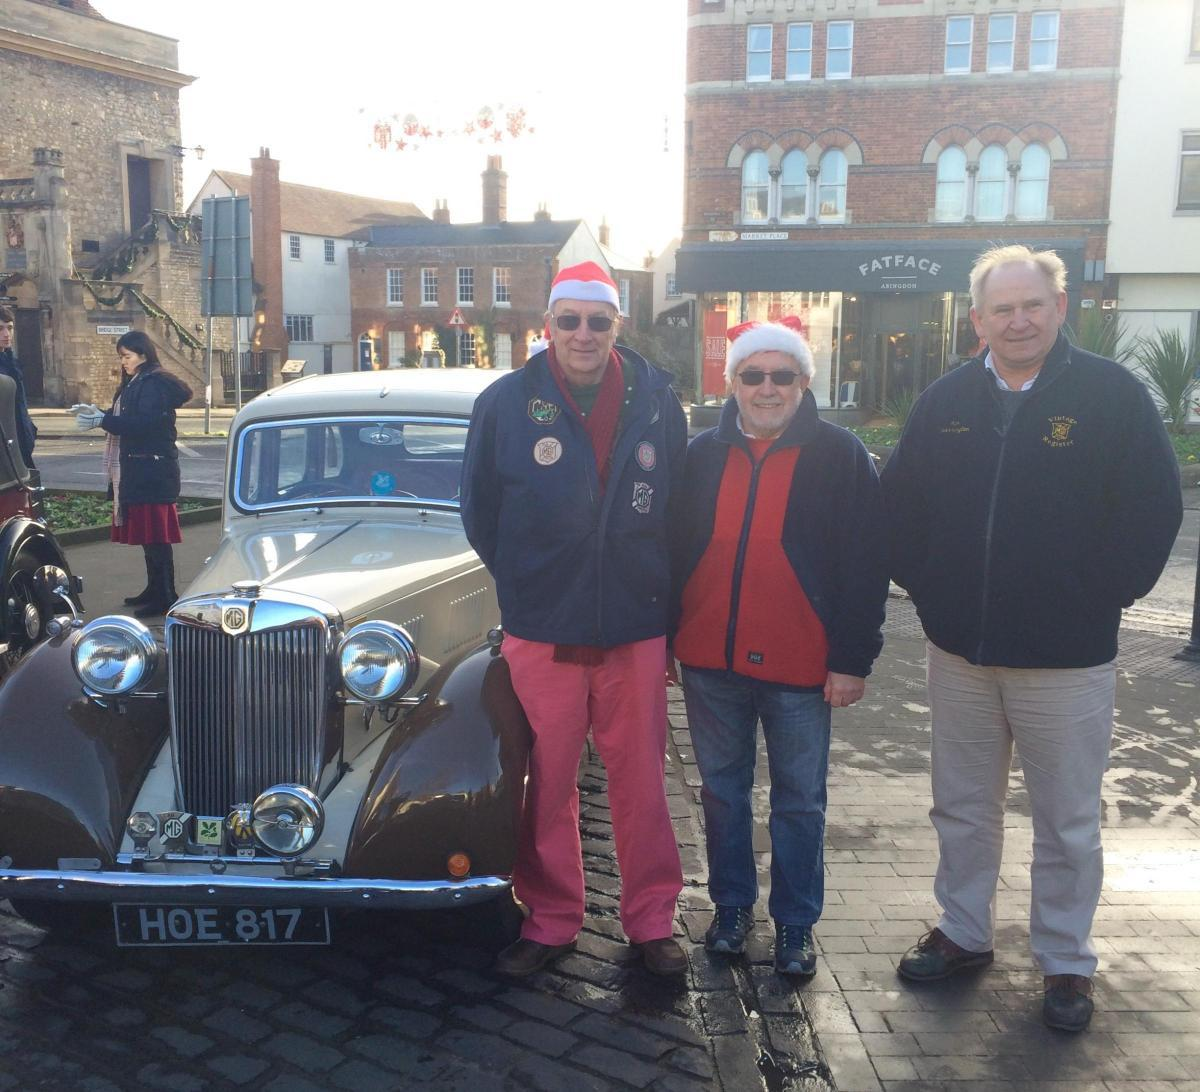 Event founder John Harris, organiser Richard Martin and MG Car Club chairman Ian Quarrington in 2016.